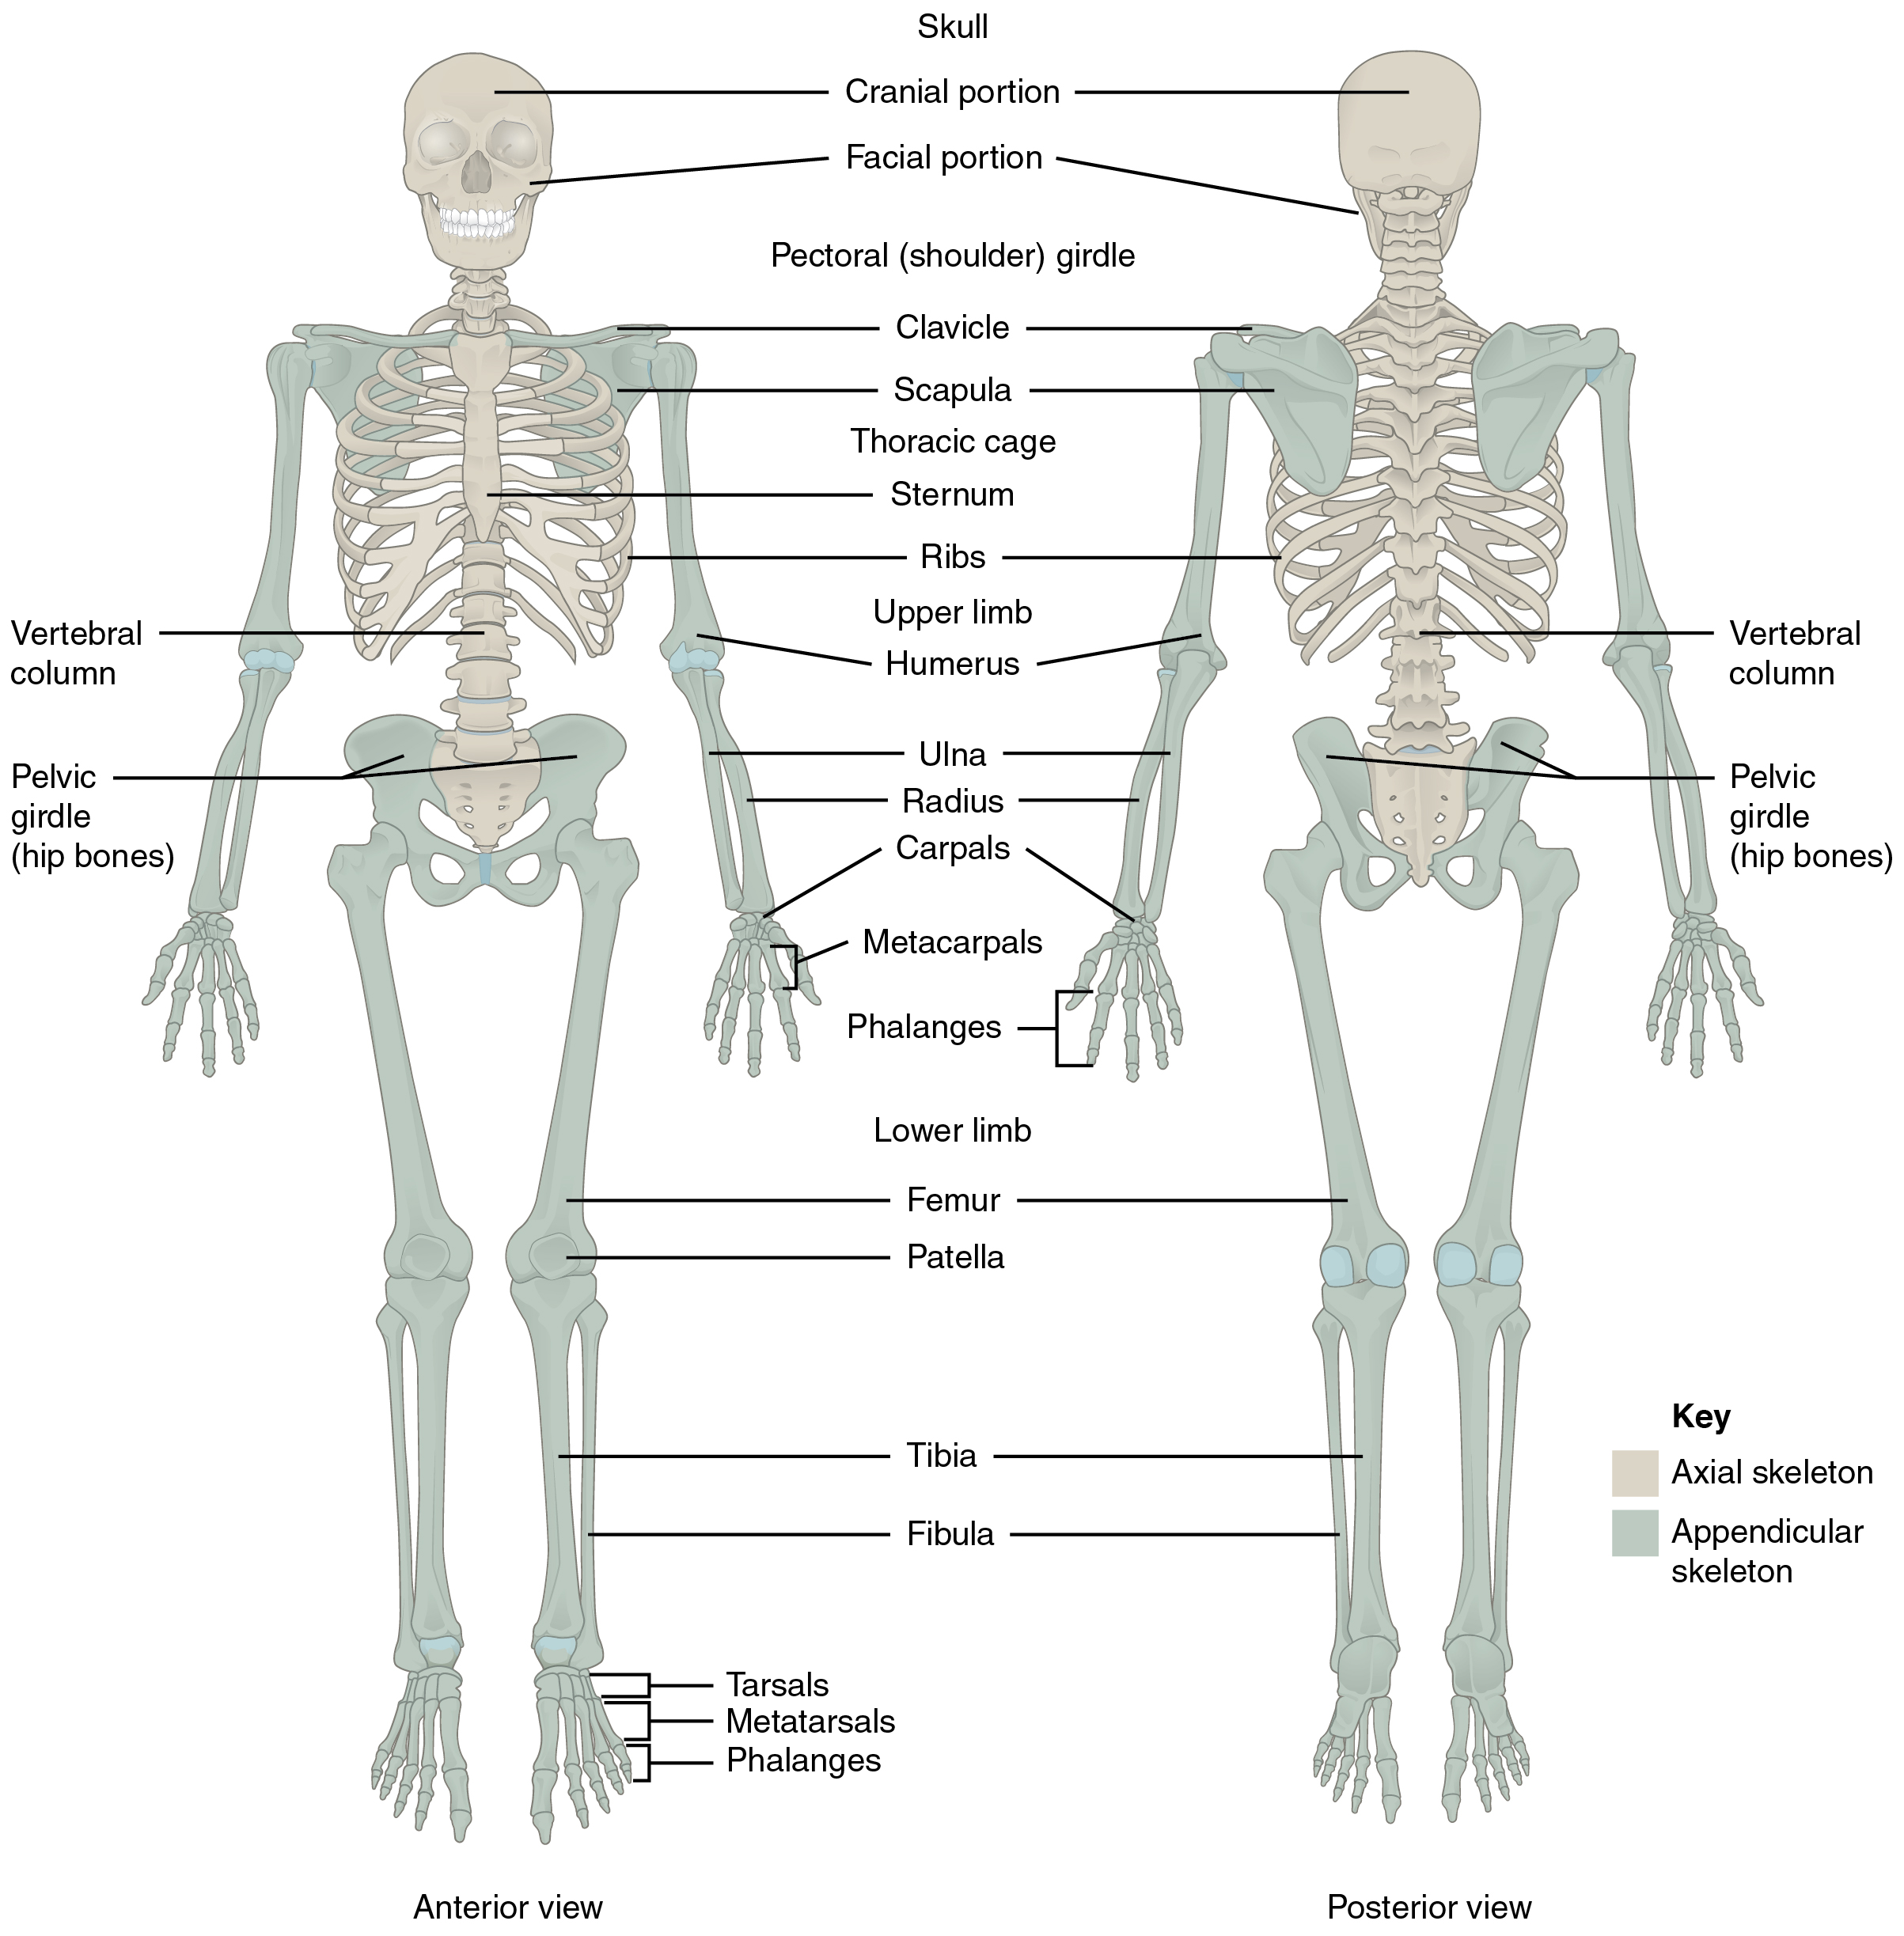 7.1 Divisions of the Skeletal System | Anatomy and Physiology